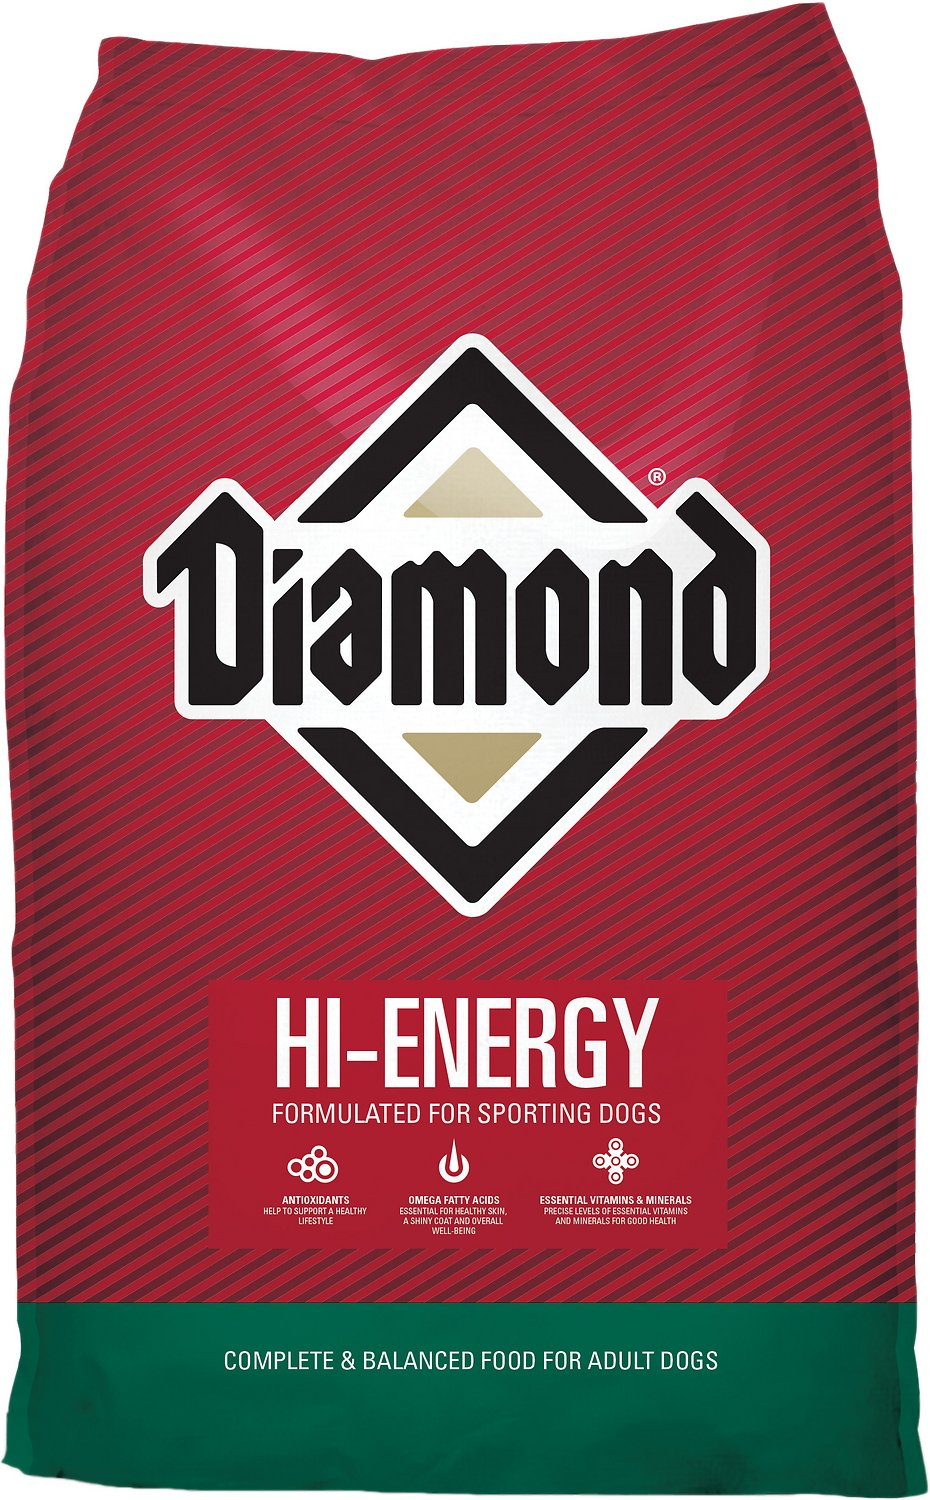 Diamond Hi-Energy Sporting Dog Formula Dry Dog Food, 50-lb bag (Weights: 50.0 pounds) Image